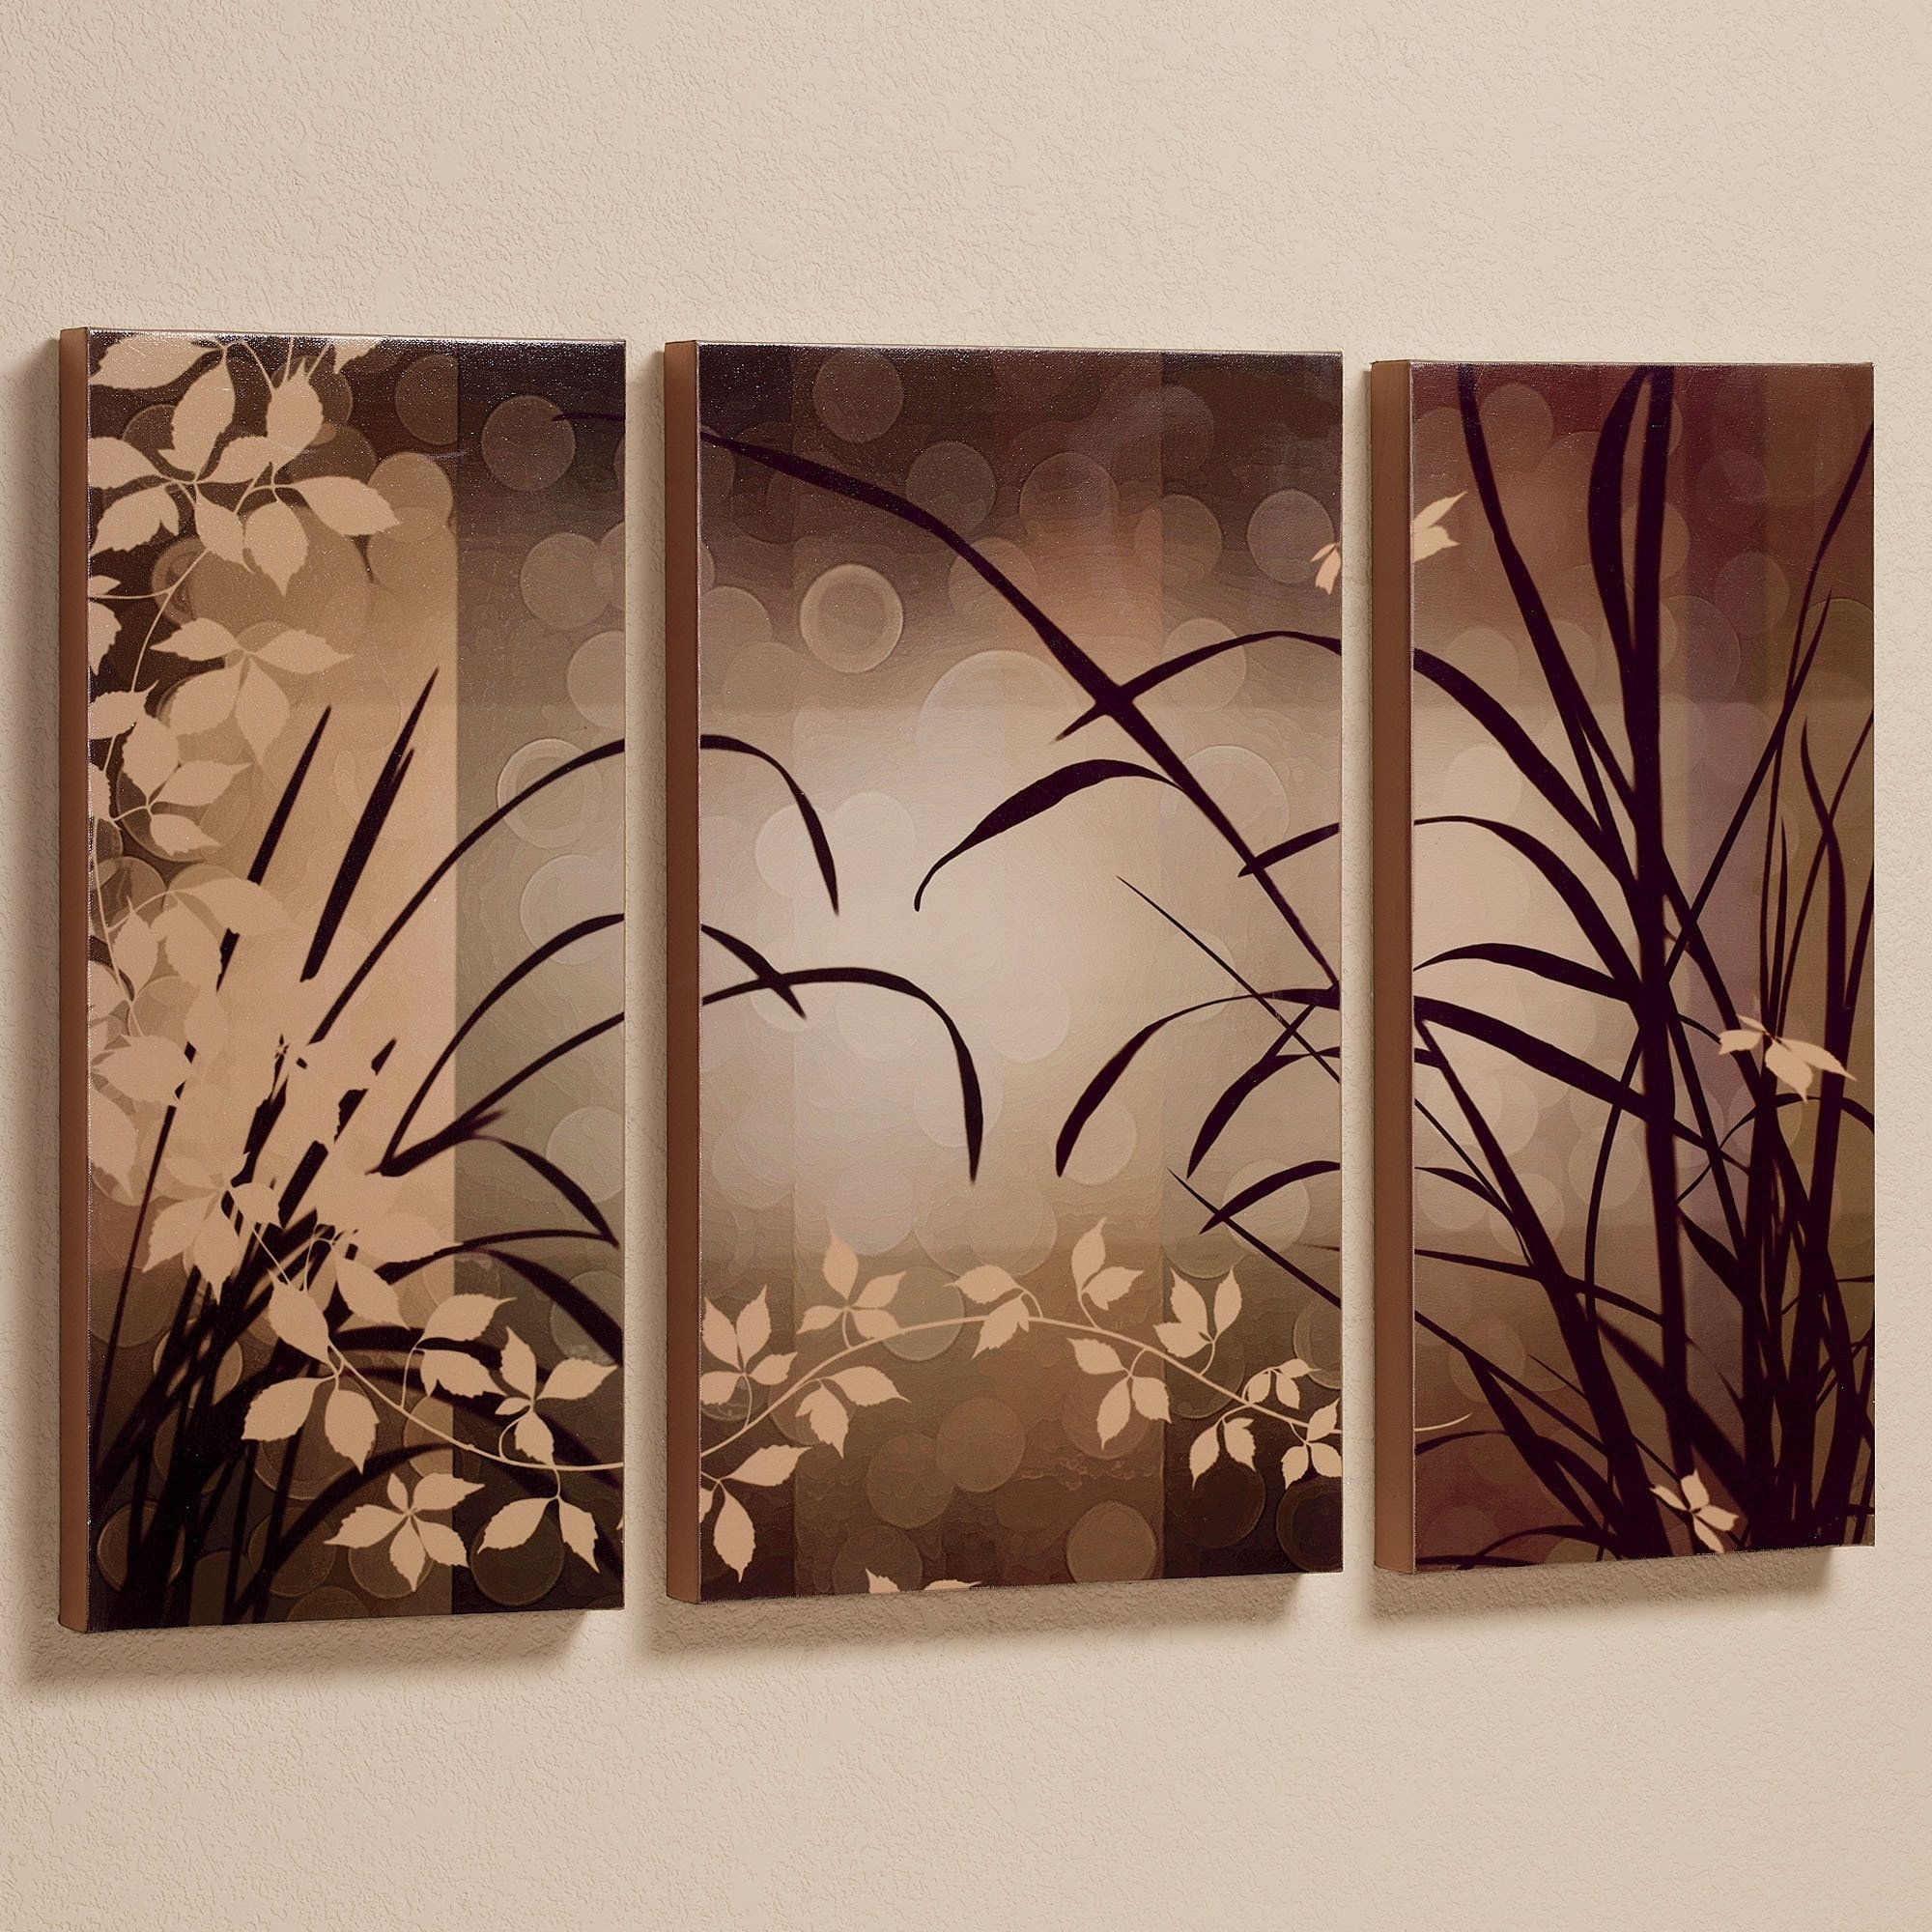 Celebrate Elegance Triptych Canvas Wall Art Set | Painting Ideas With Regard To Wall Canvas Art (View 14 of 20)